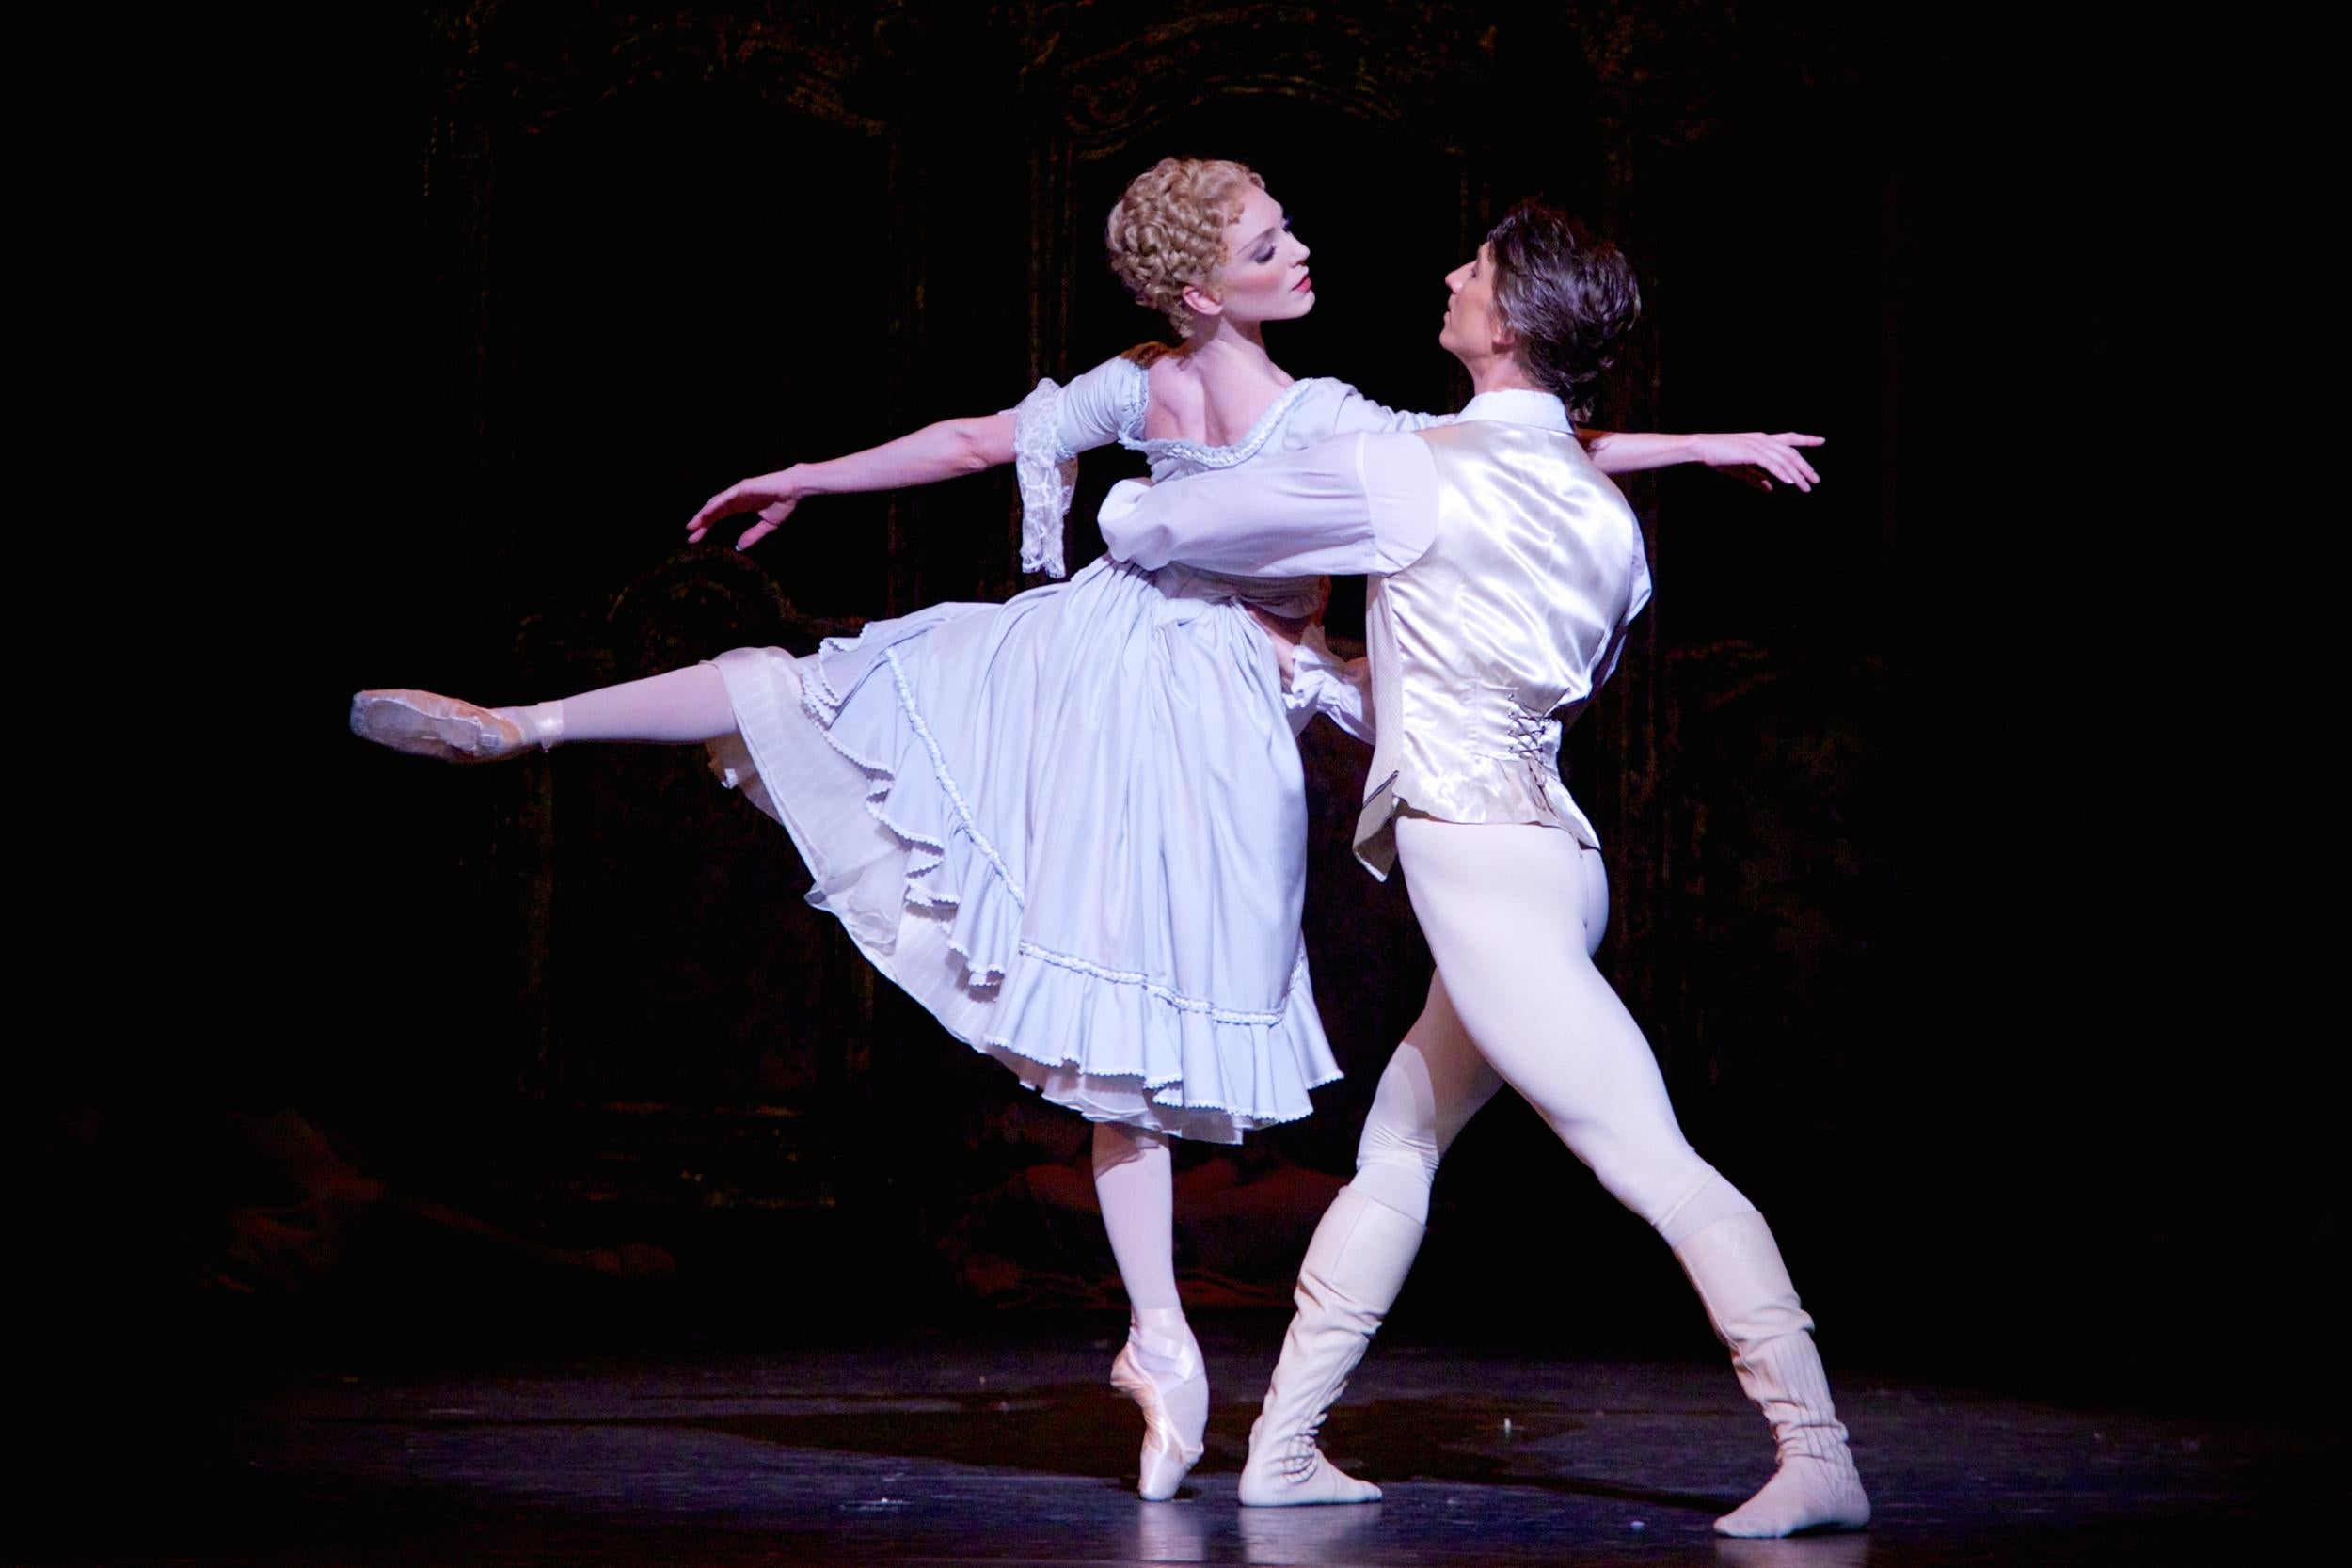 Manon review, Royal Opera House: New season opens with clean dancing and dramatic gusto